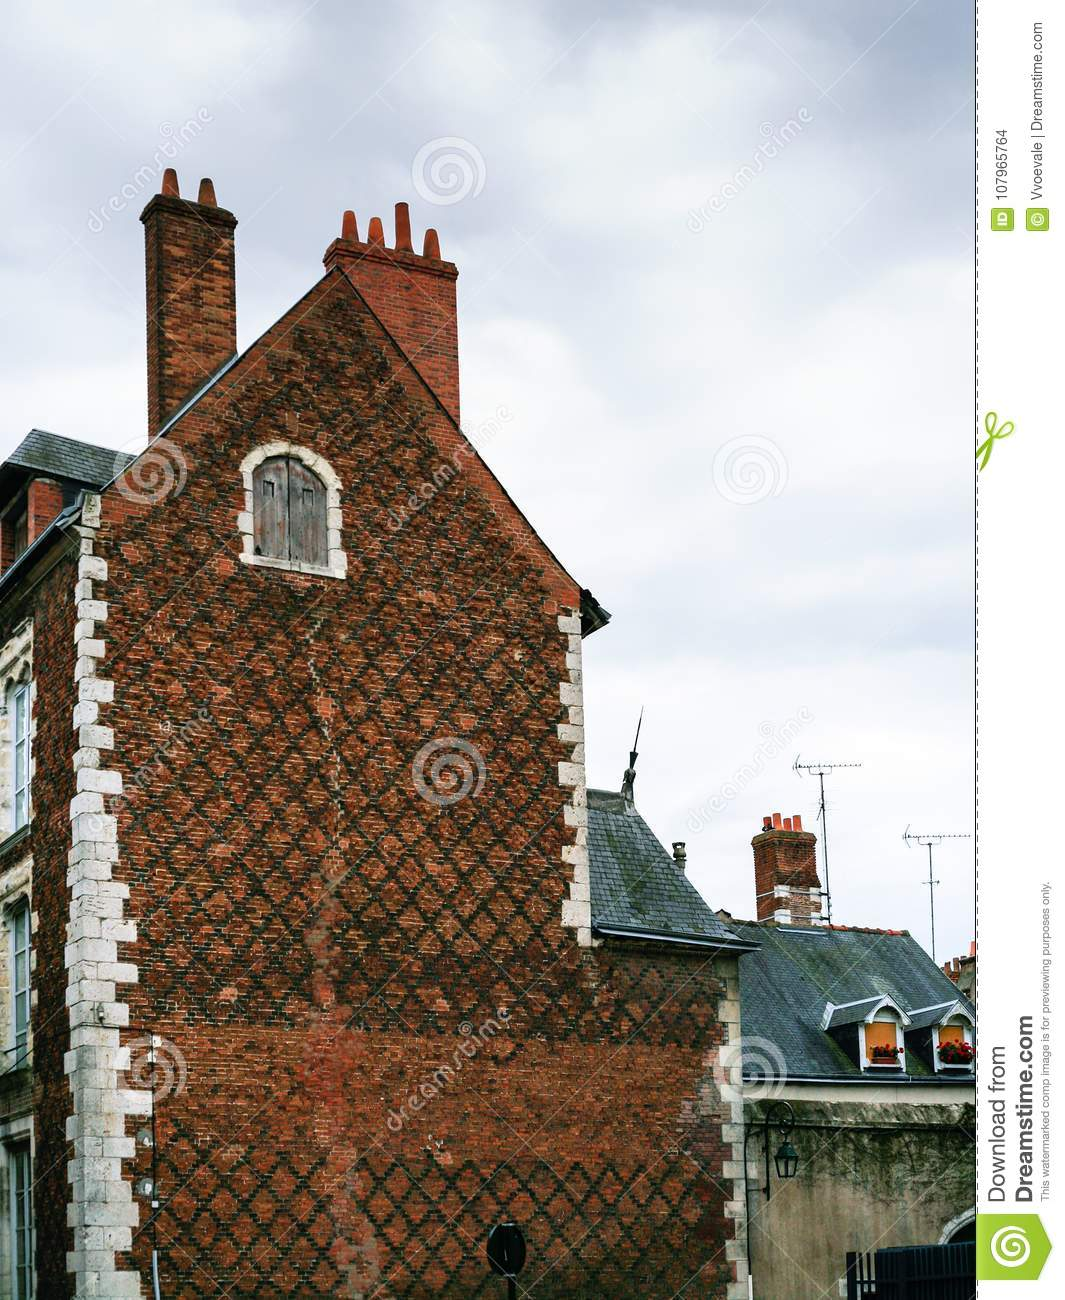 Old Brick Apartment Building: Old Brick Urban Building In Orleans City Stock Photo